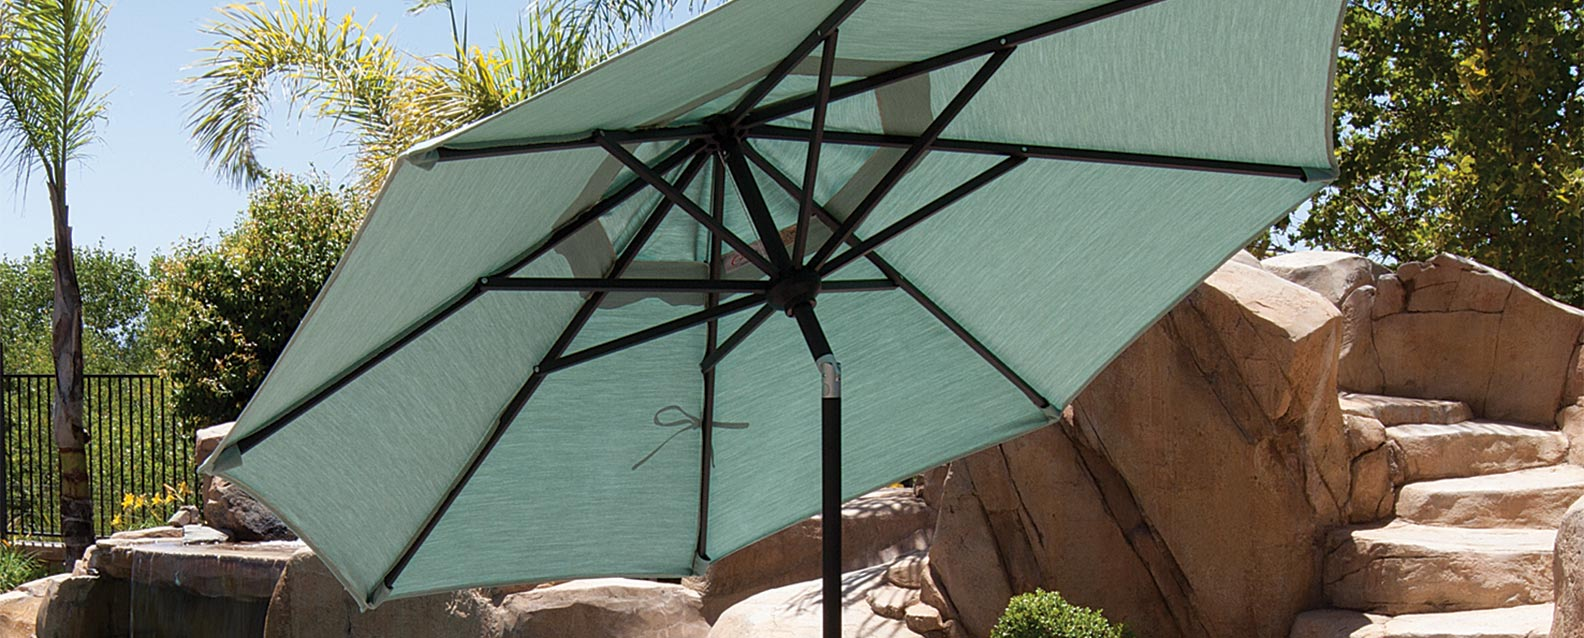 At Just Six Foot In Diameter, This Market Umbrella Is Ideal For Those Tight  On Space. Its Pushbutton Tilt Allows For Maximum Shade Flexibility.